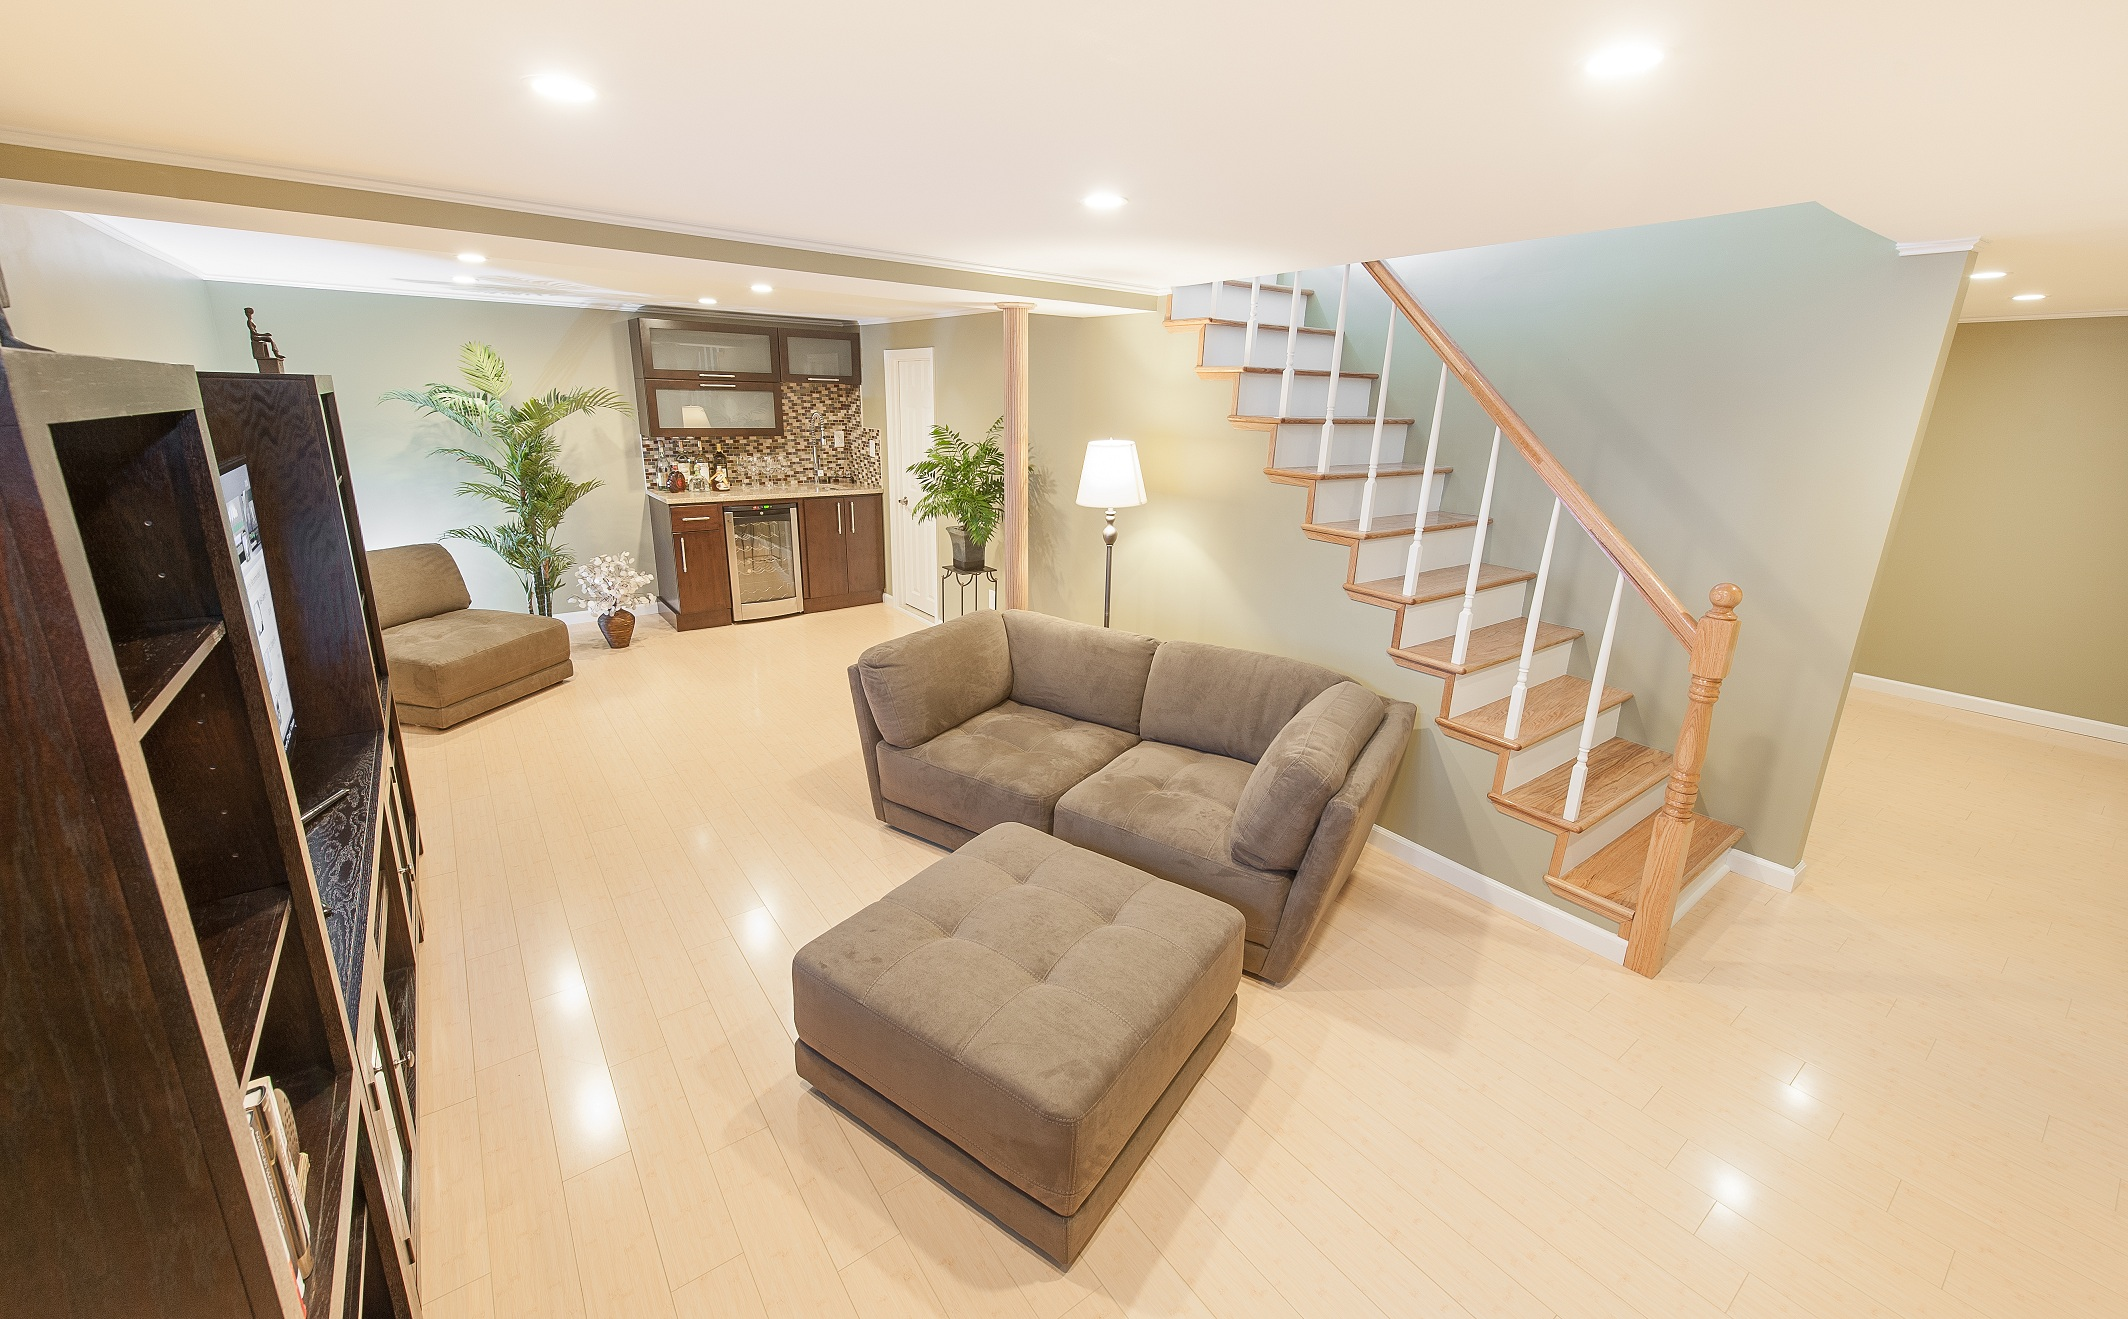 Basement flooring options choosing a basement floor for Good carpet for basement floors